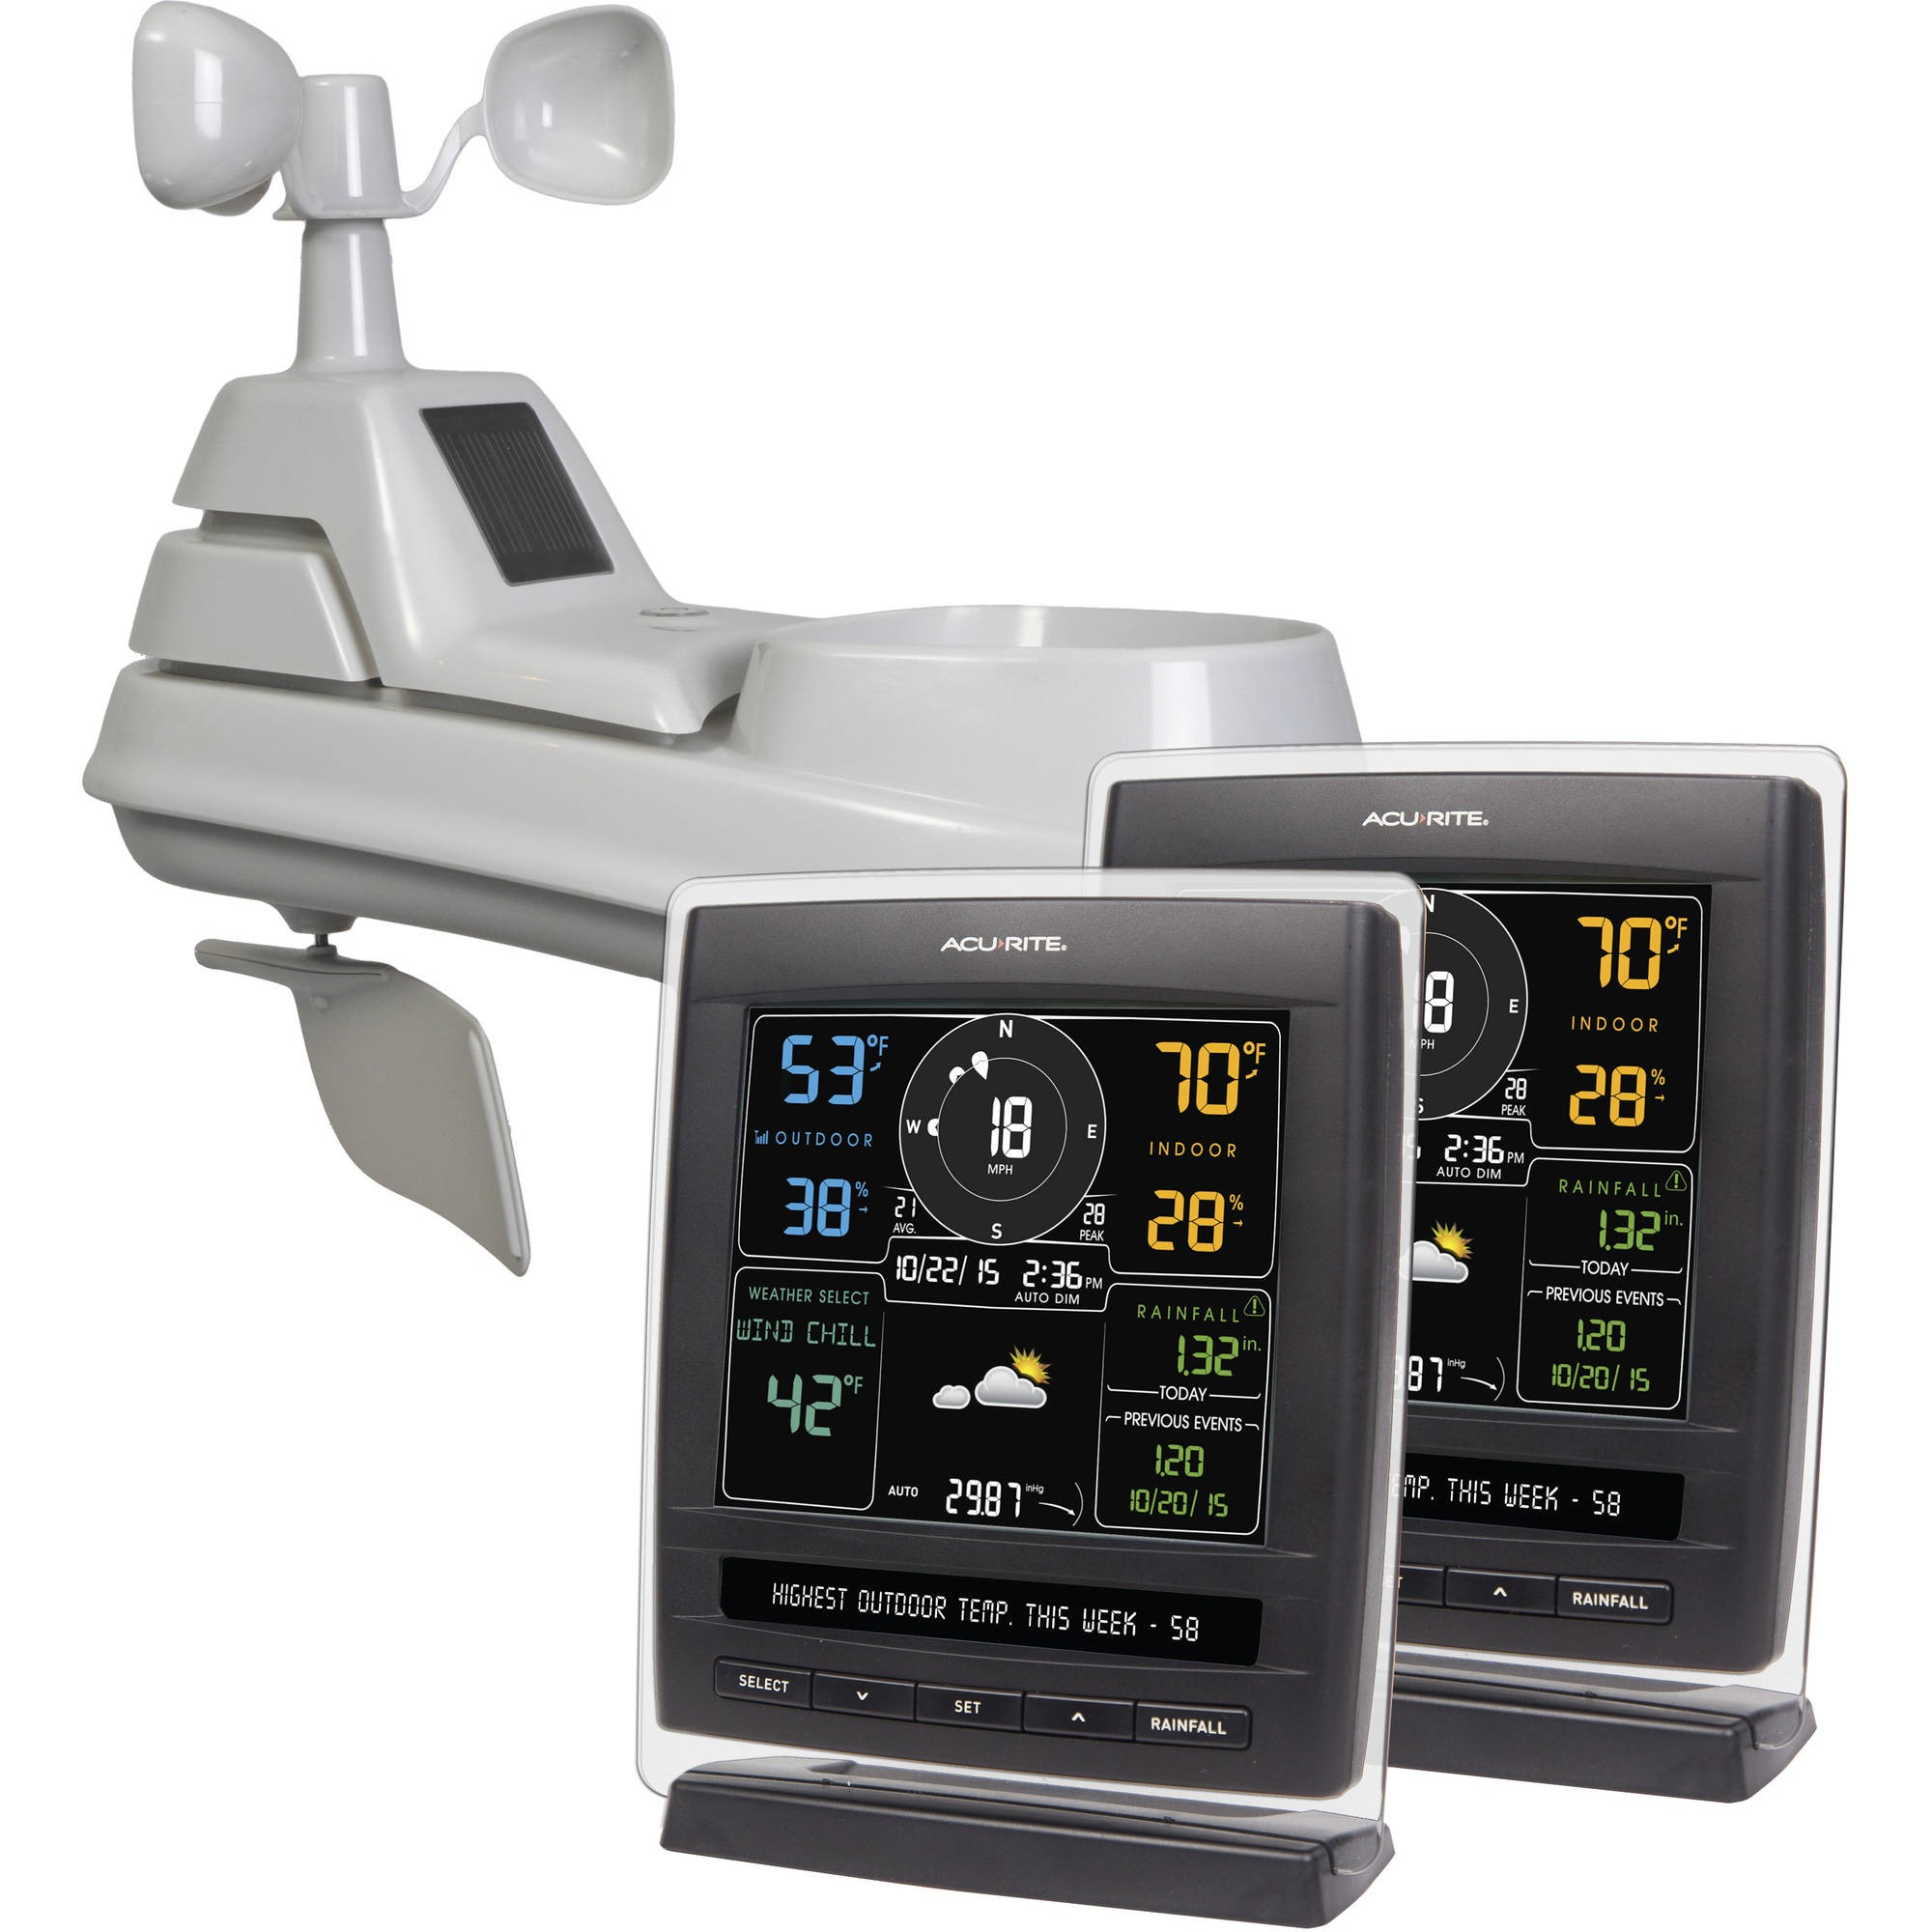 AcuRite 01042 5-in-1 Pro Weather Station with 2 Displays